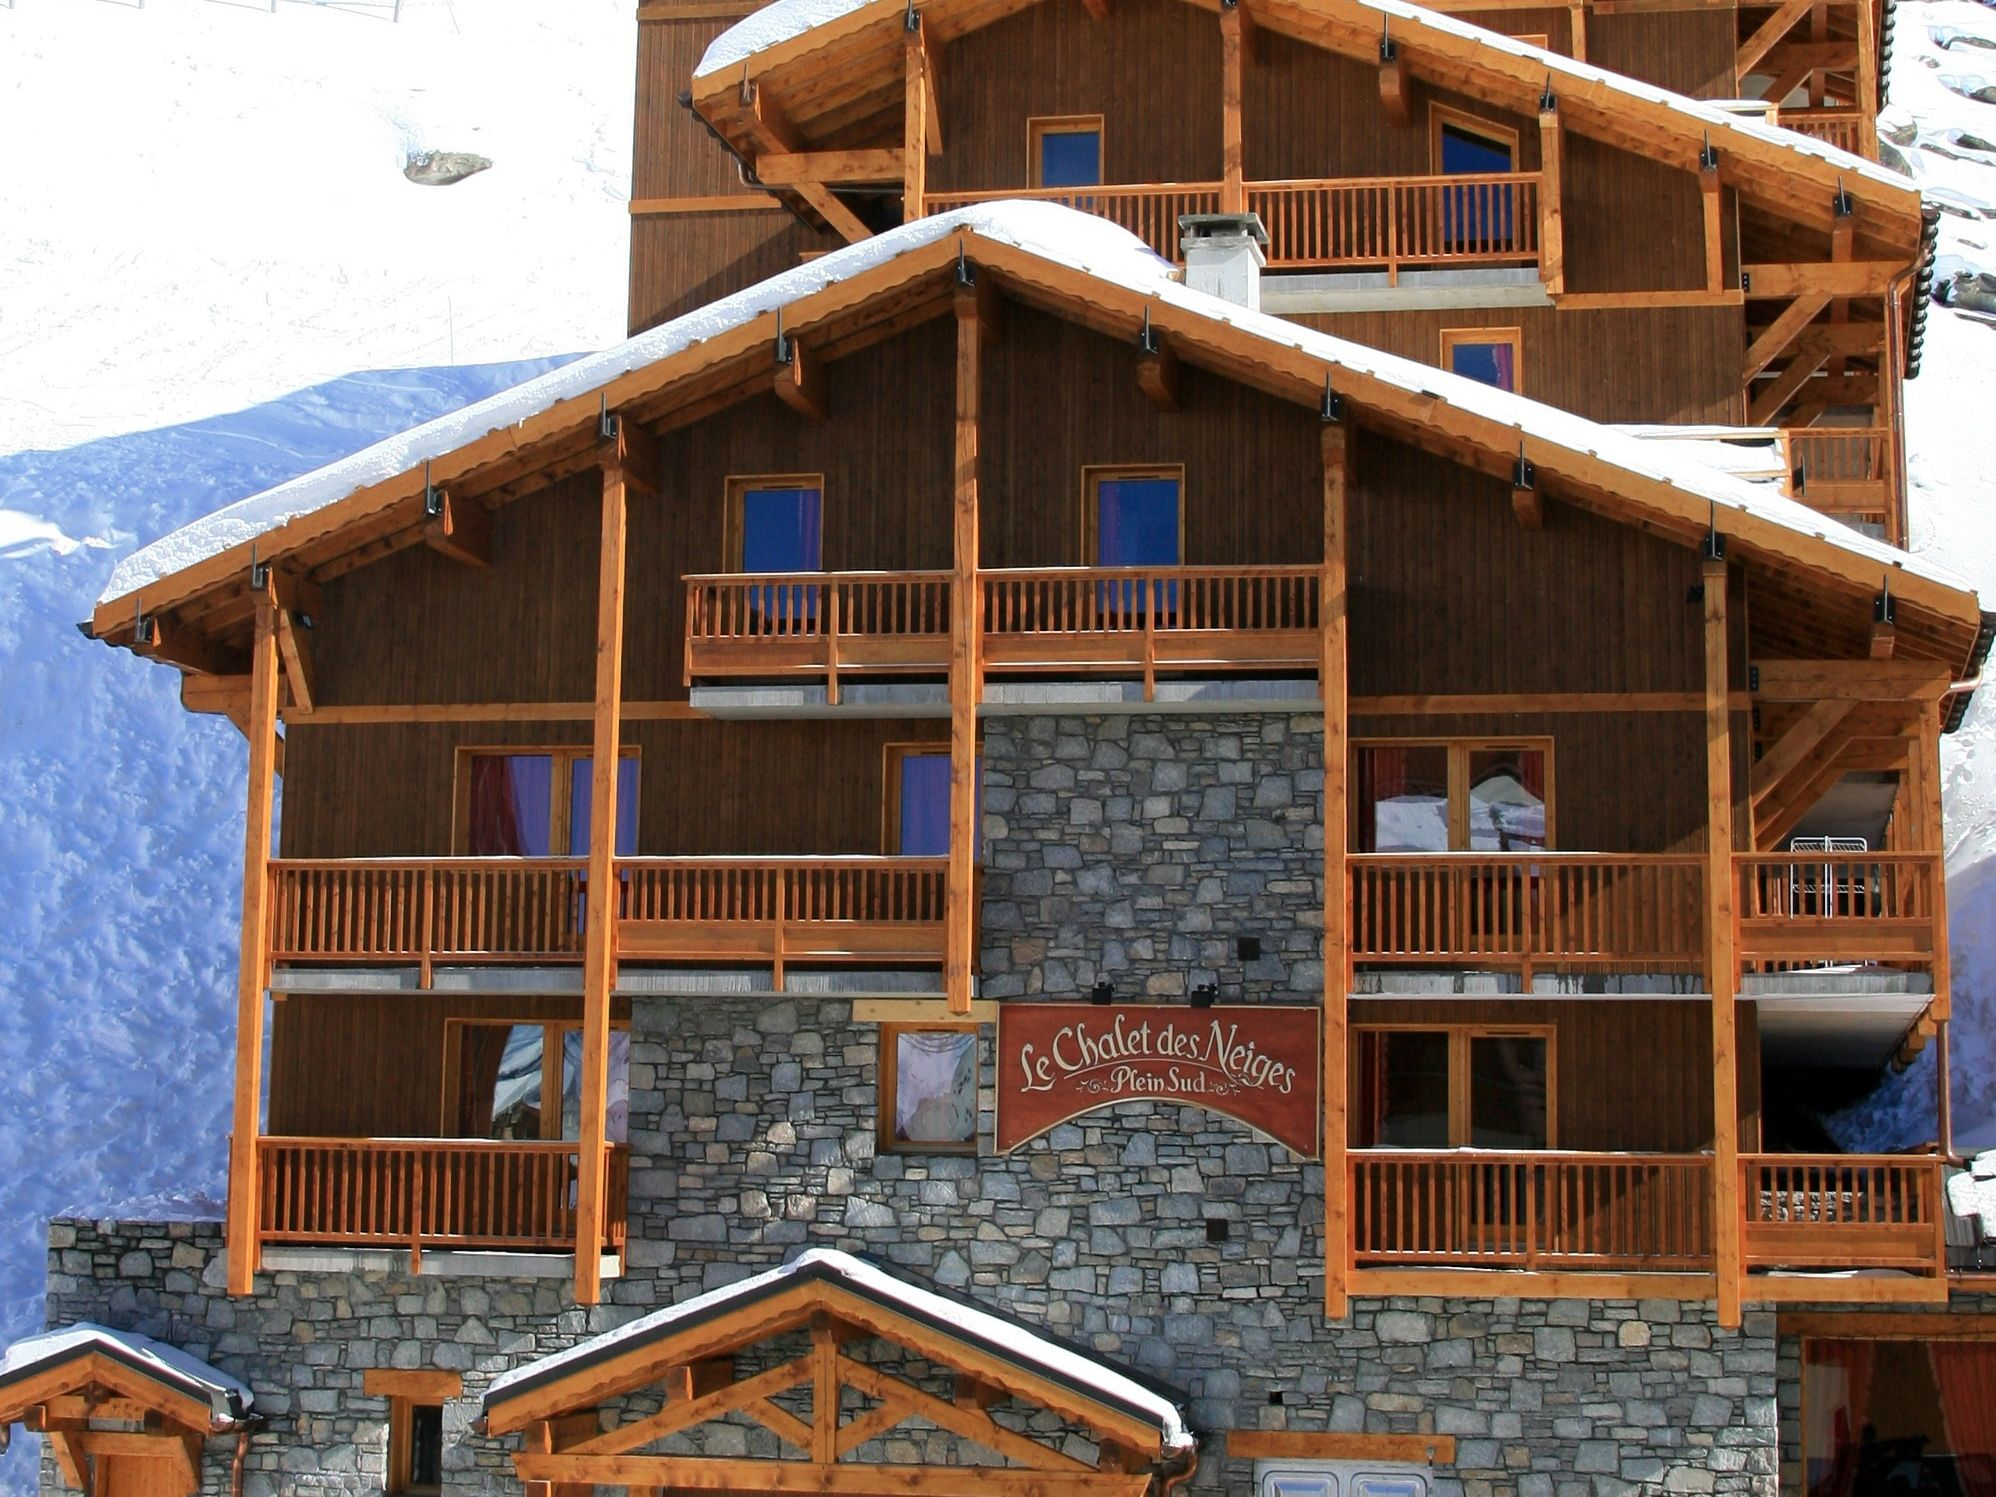 Appartement Val Thorens - Appartement Chalet des Neiges - Plein Sud